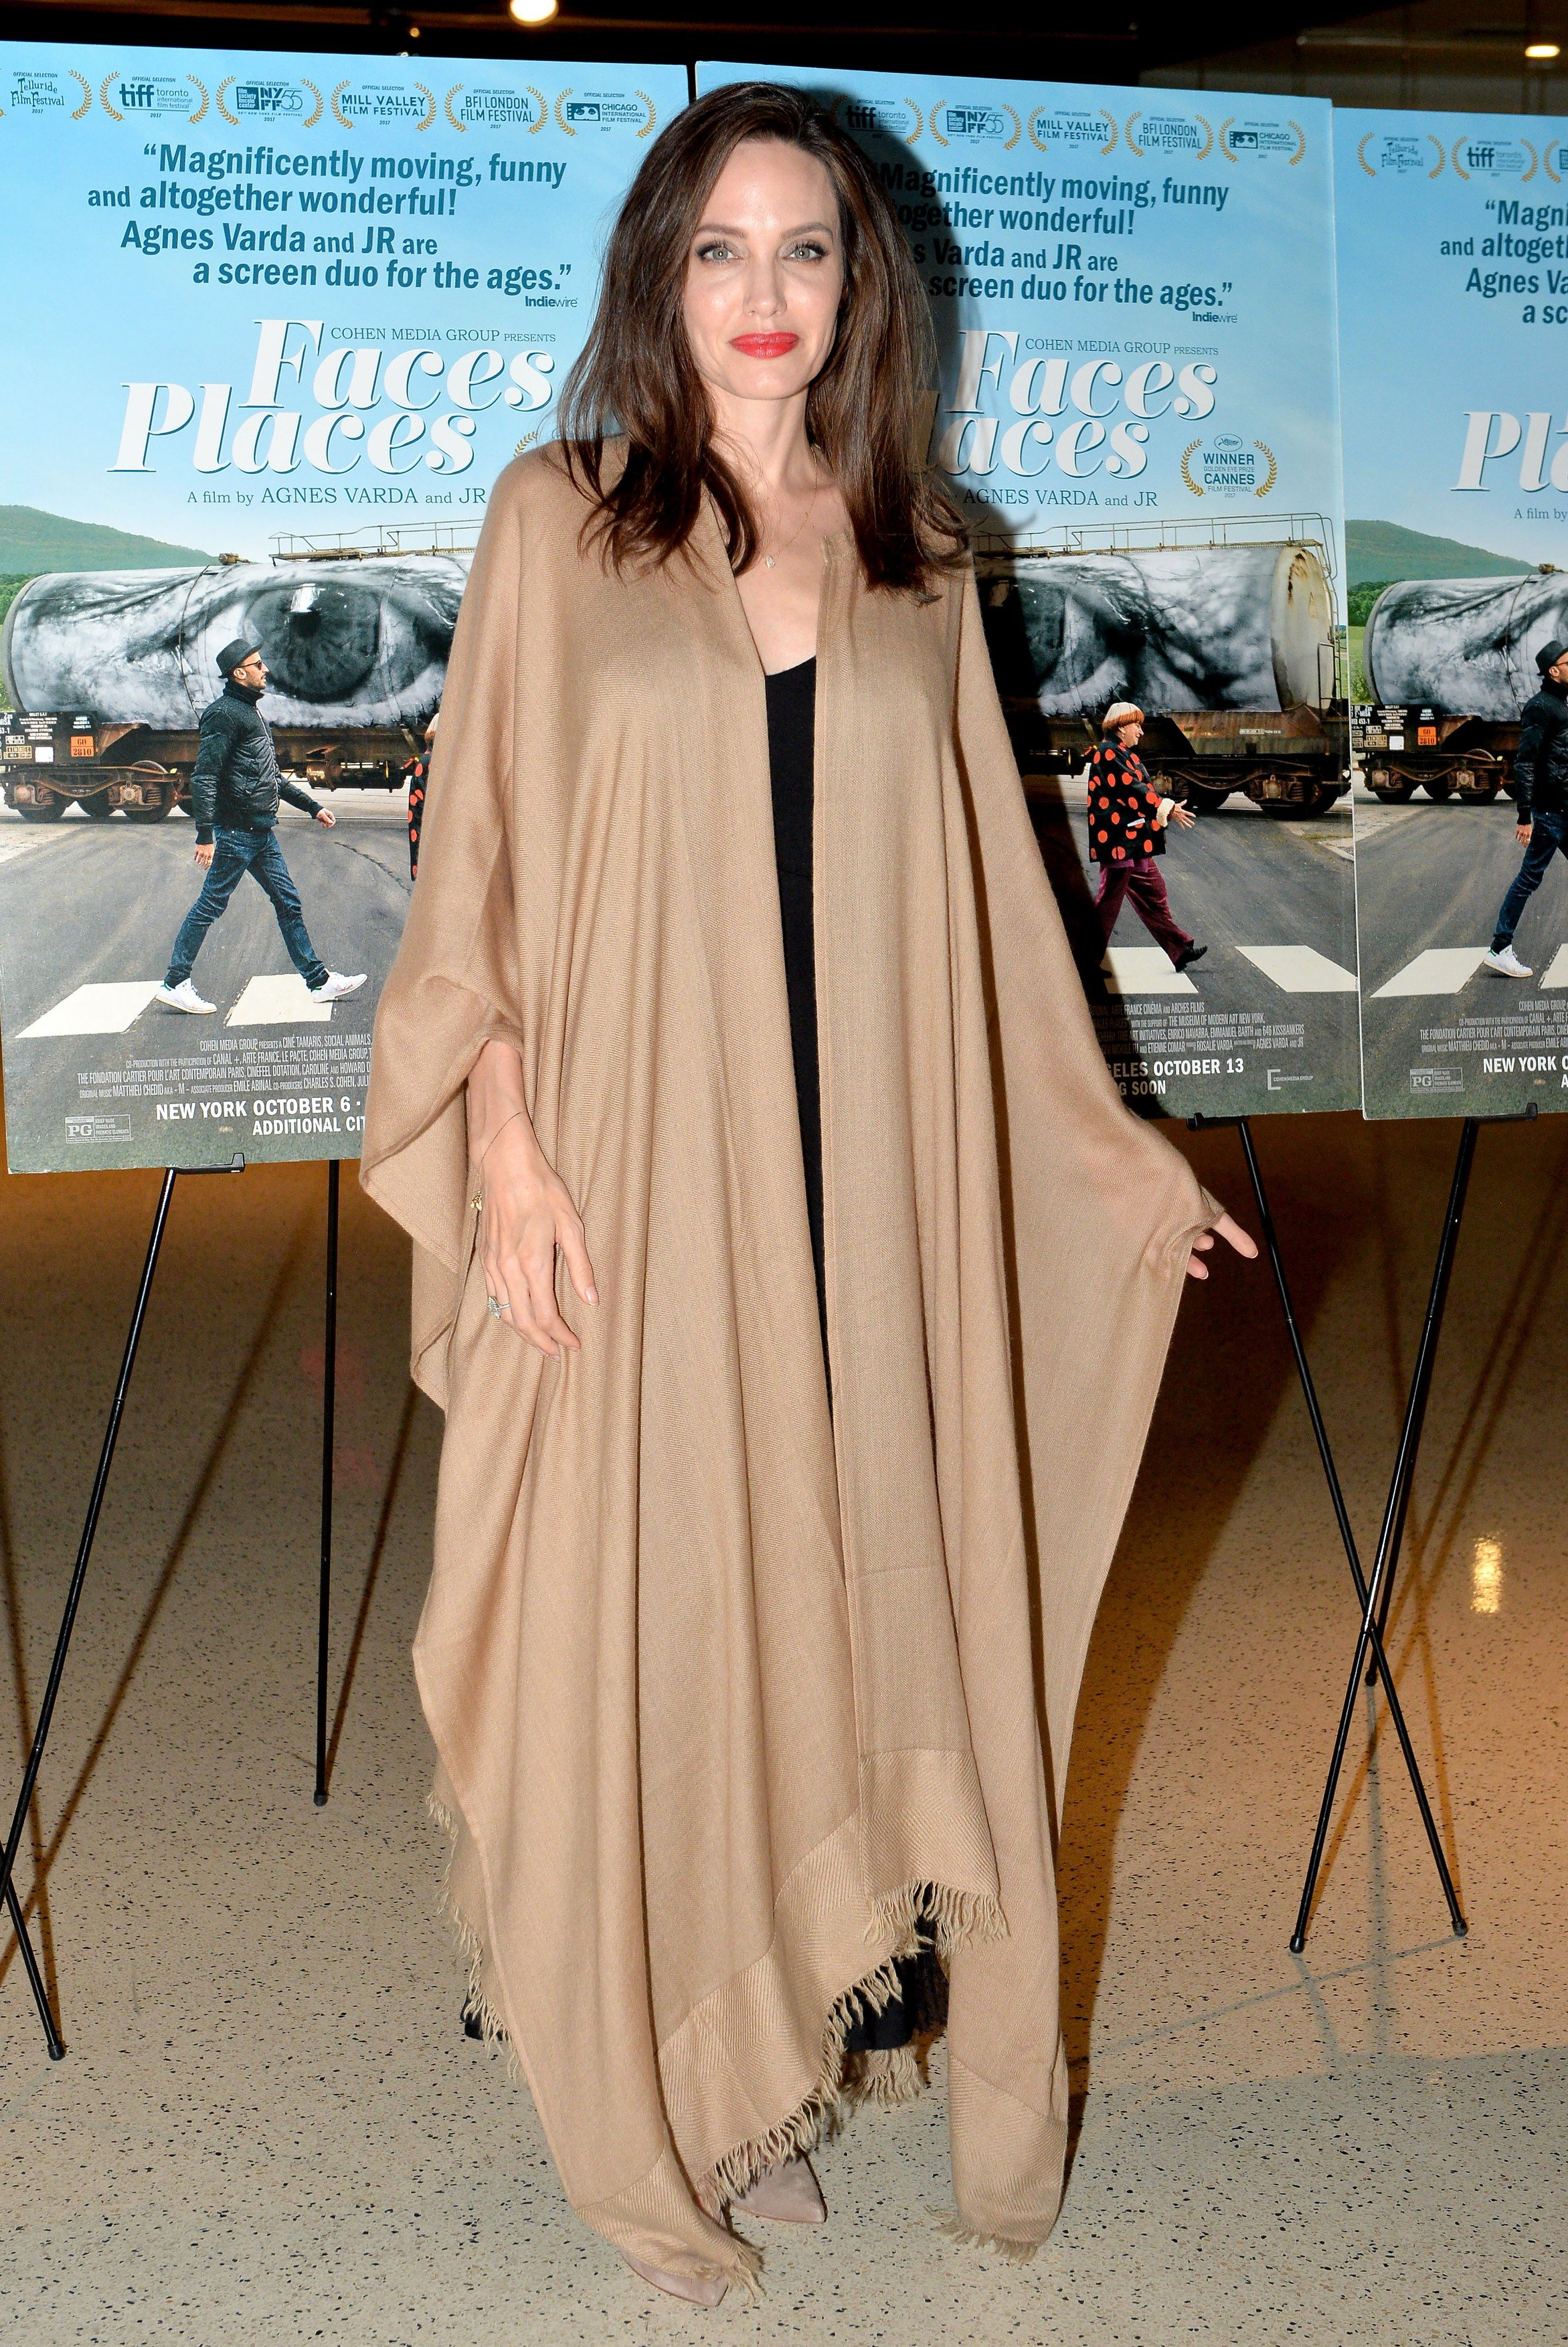 Angelina Jolie attends the Los Angeles Premiere of Faces Places at the Silver Screen Theatre in the Pacific Design Center on October 11, 2017 in West Hollywood, California., Image: 352567365, License: Rights-managed, Restrictions: , Model Release: no, Credit line: Profimedia, Abaca